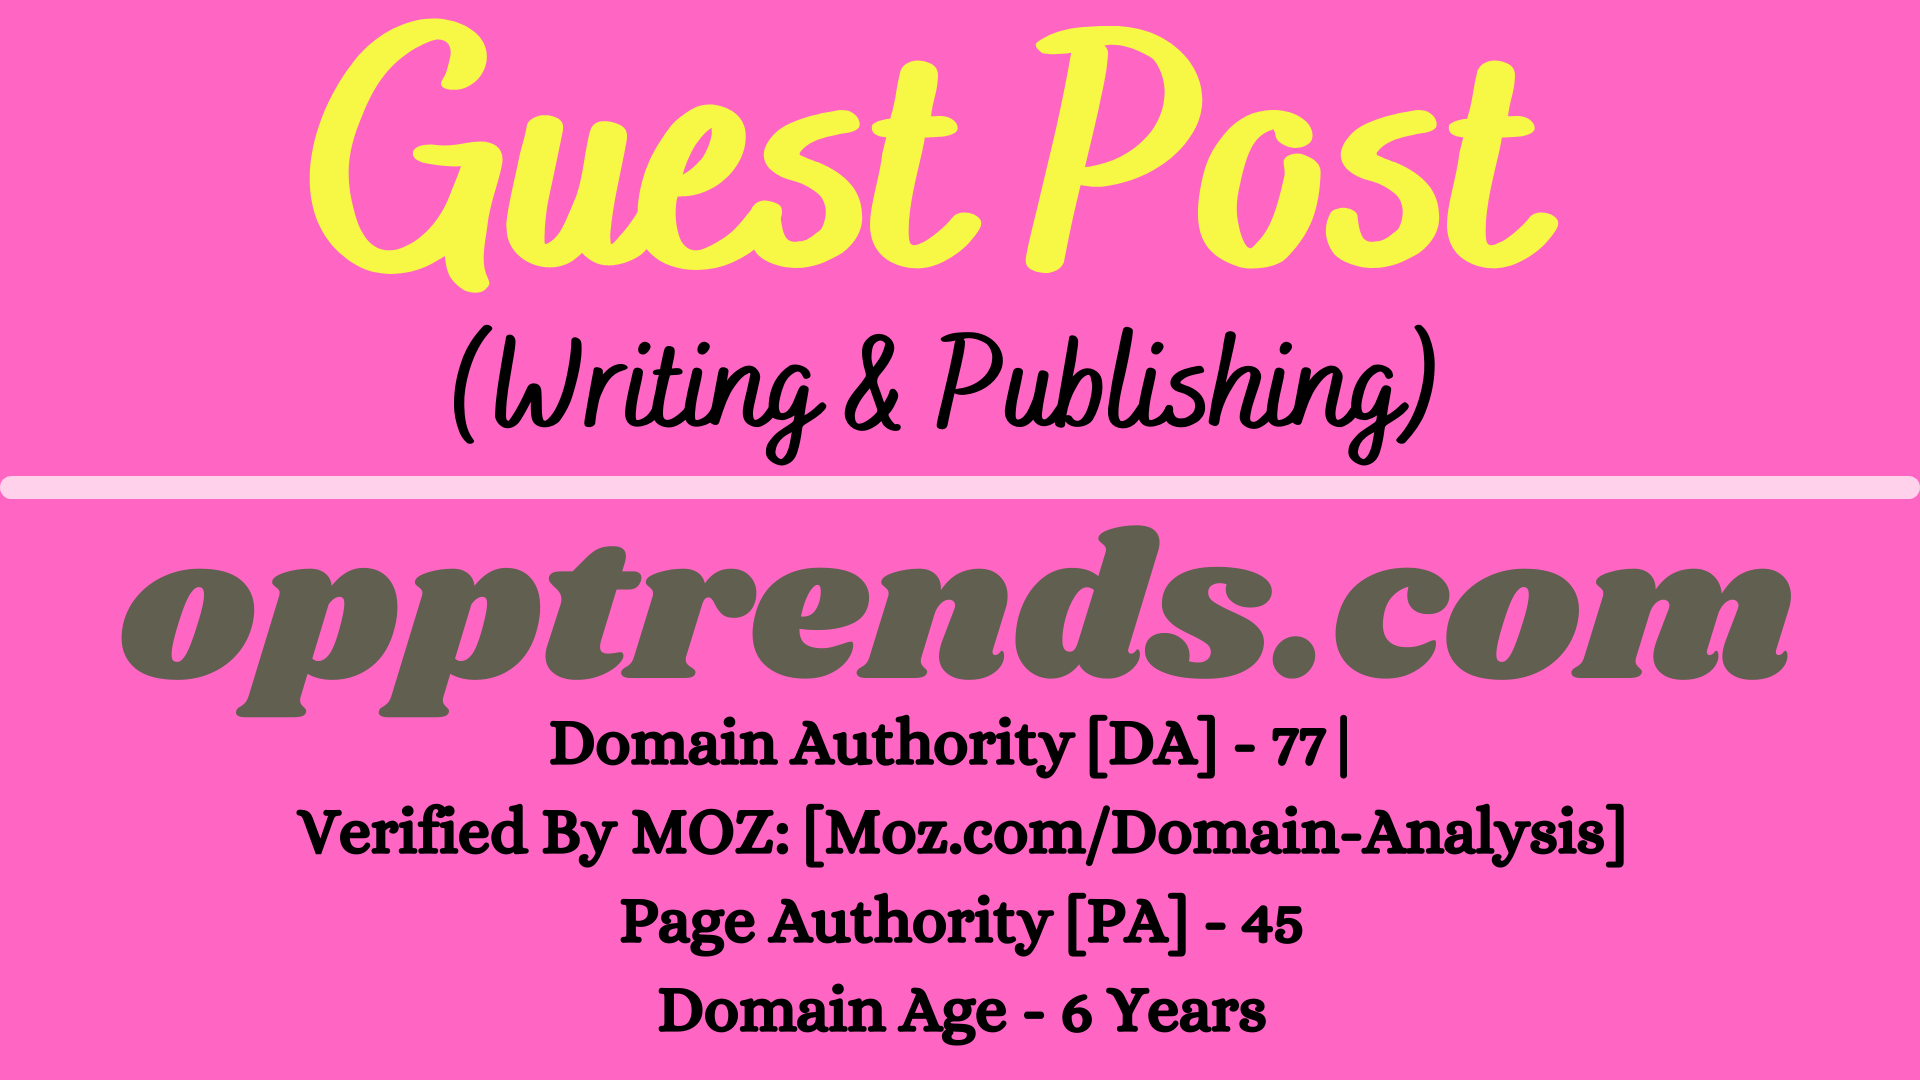 I will provide Guest Post on opptrends. com